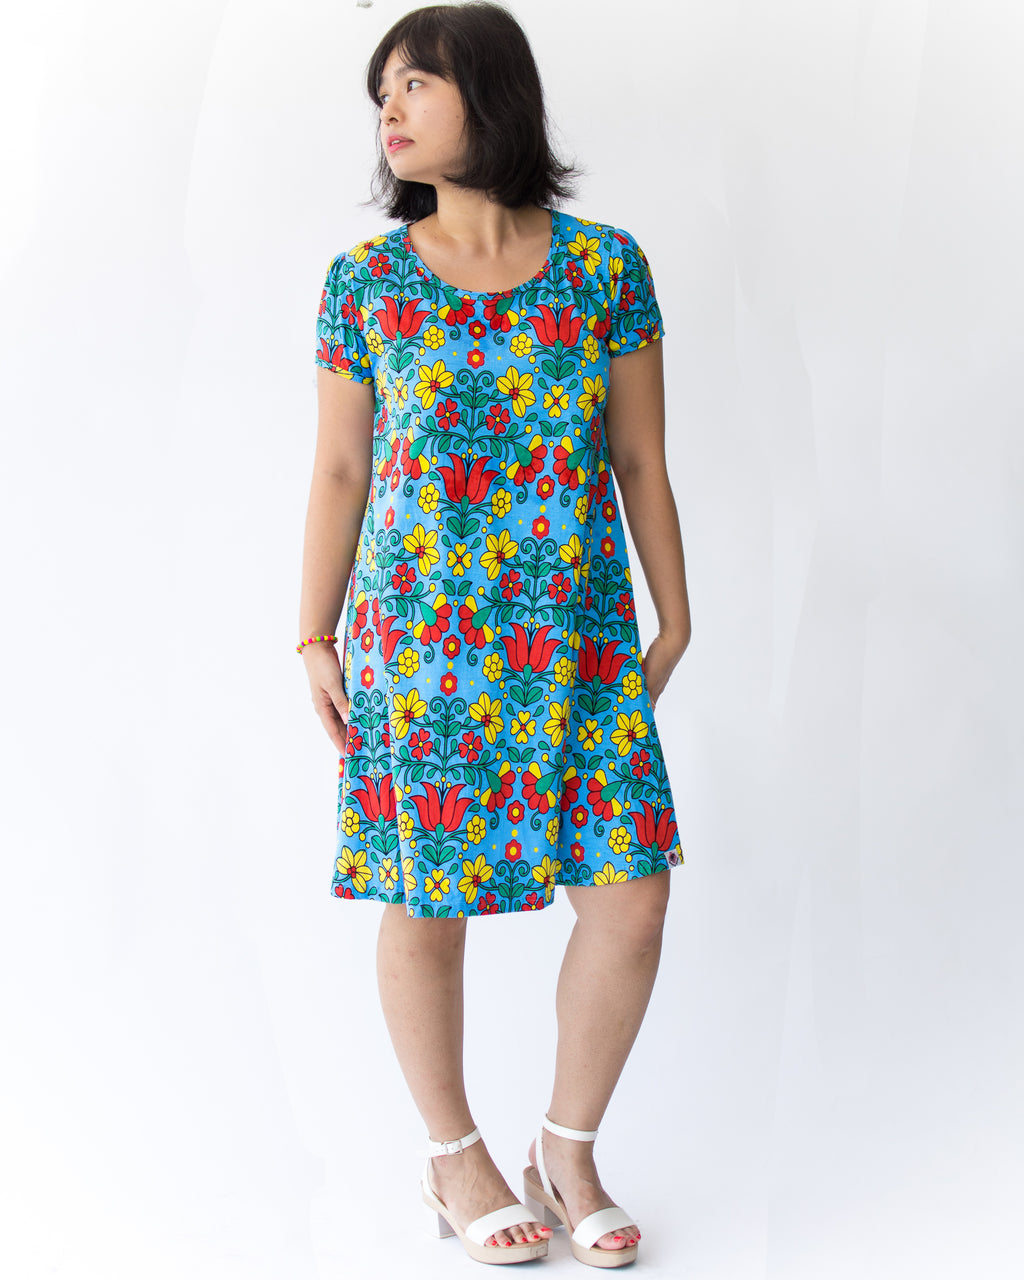 Adult Gabriella Dress - Roses & Rhinos